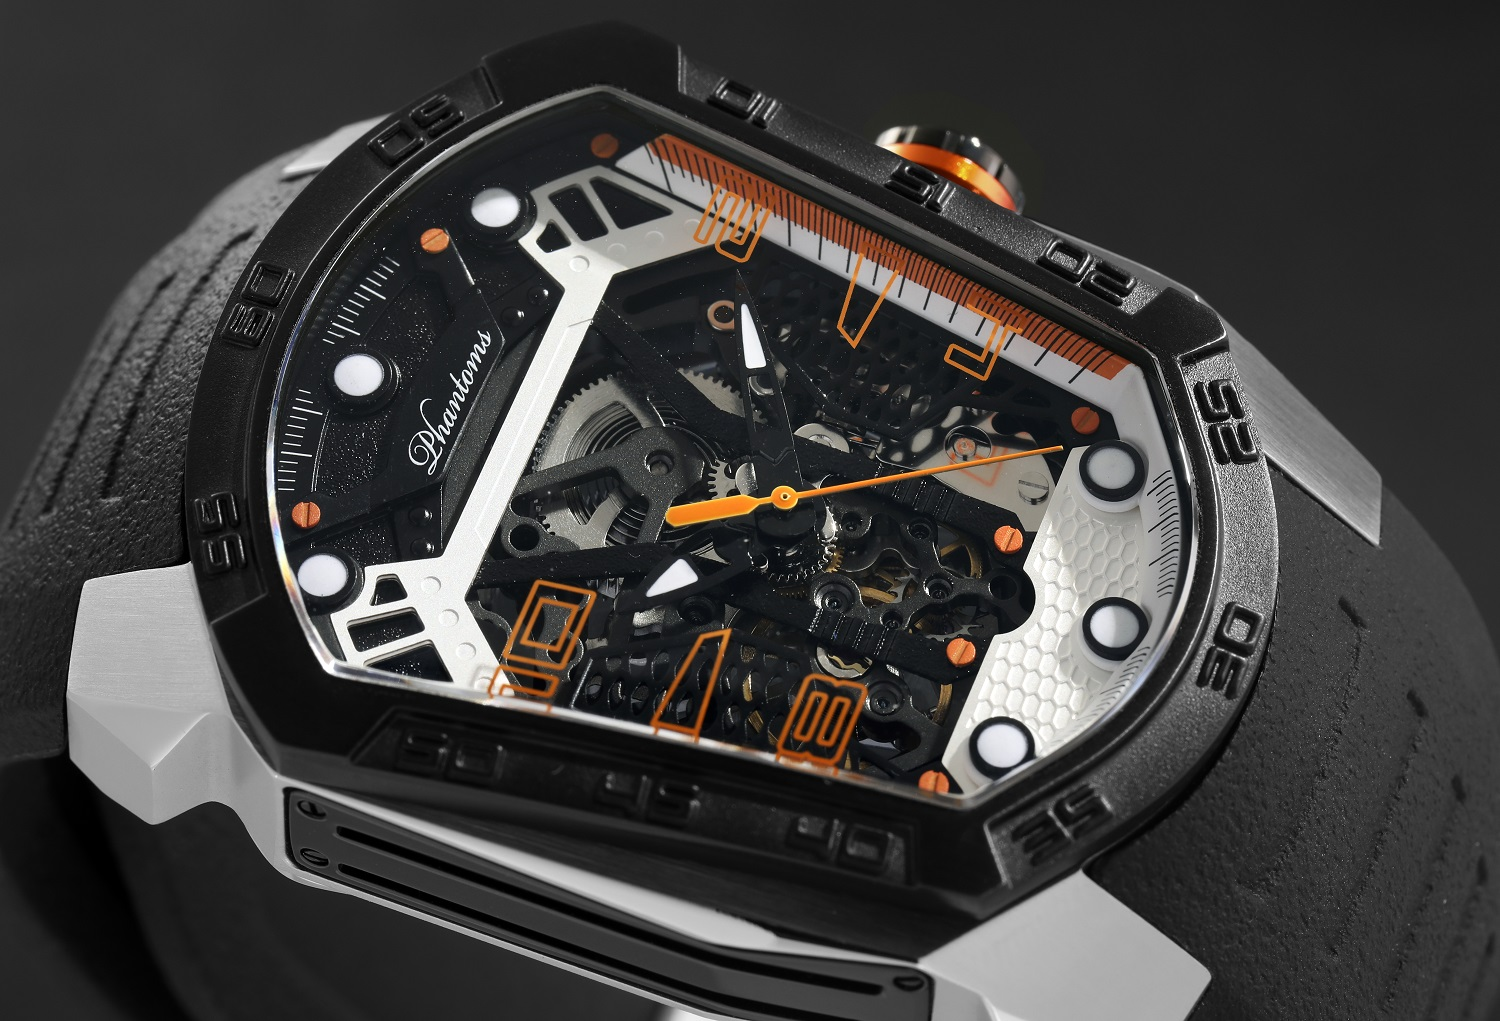 Tracer Blade Automatic Mechanical Watch Futuristic Mens Watch Best Microbrand